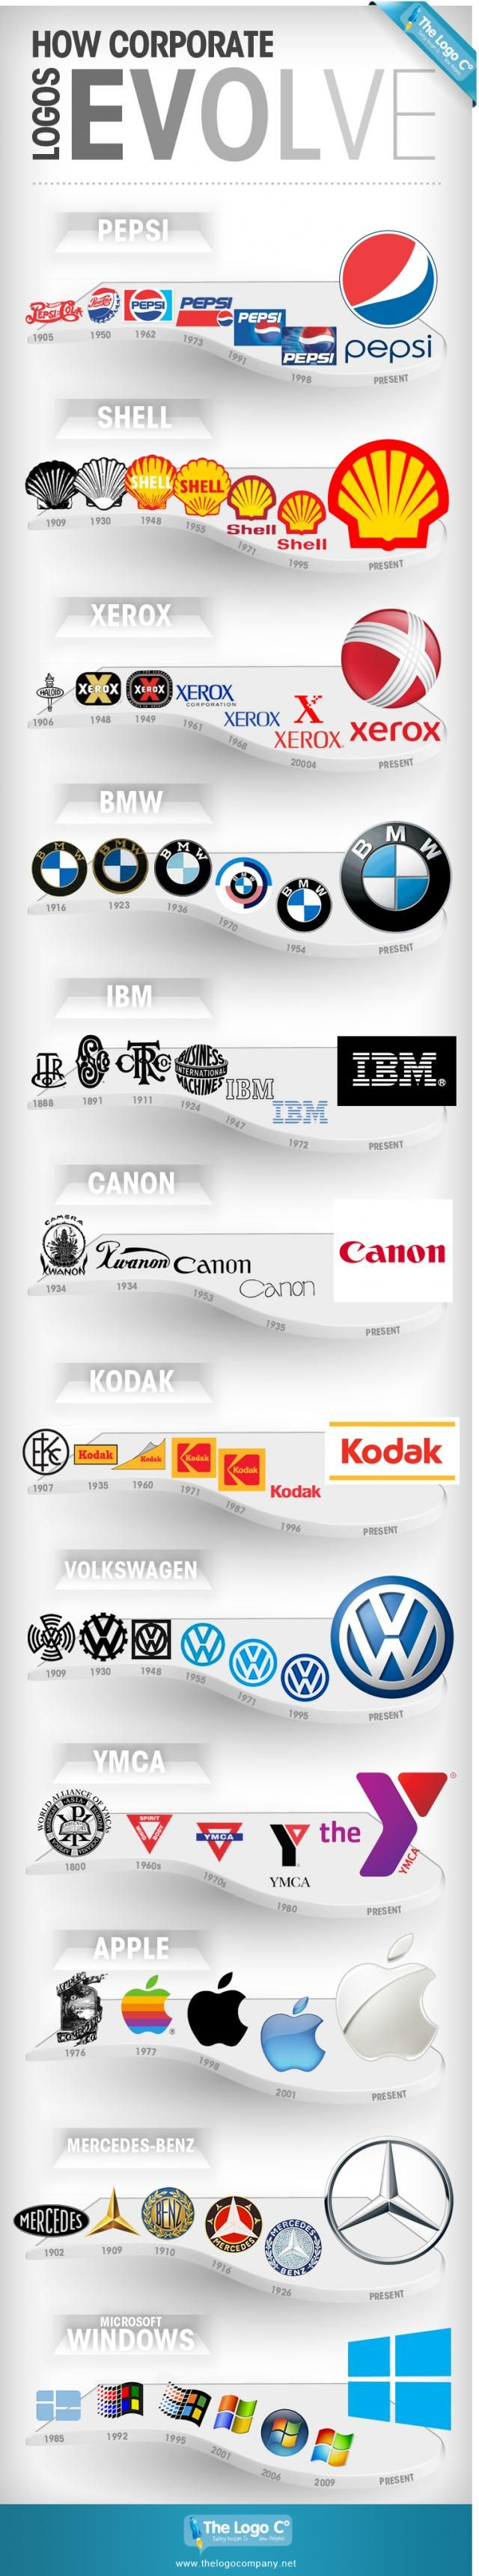 Simple design, but has good repetition and makes it easy to see the evolution of logos